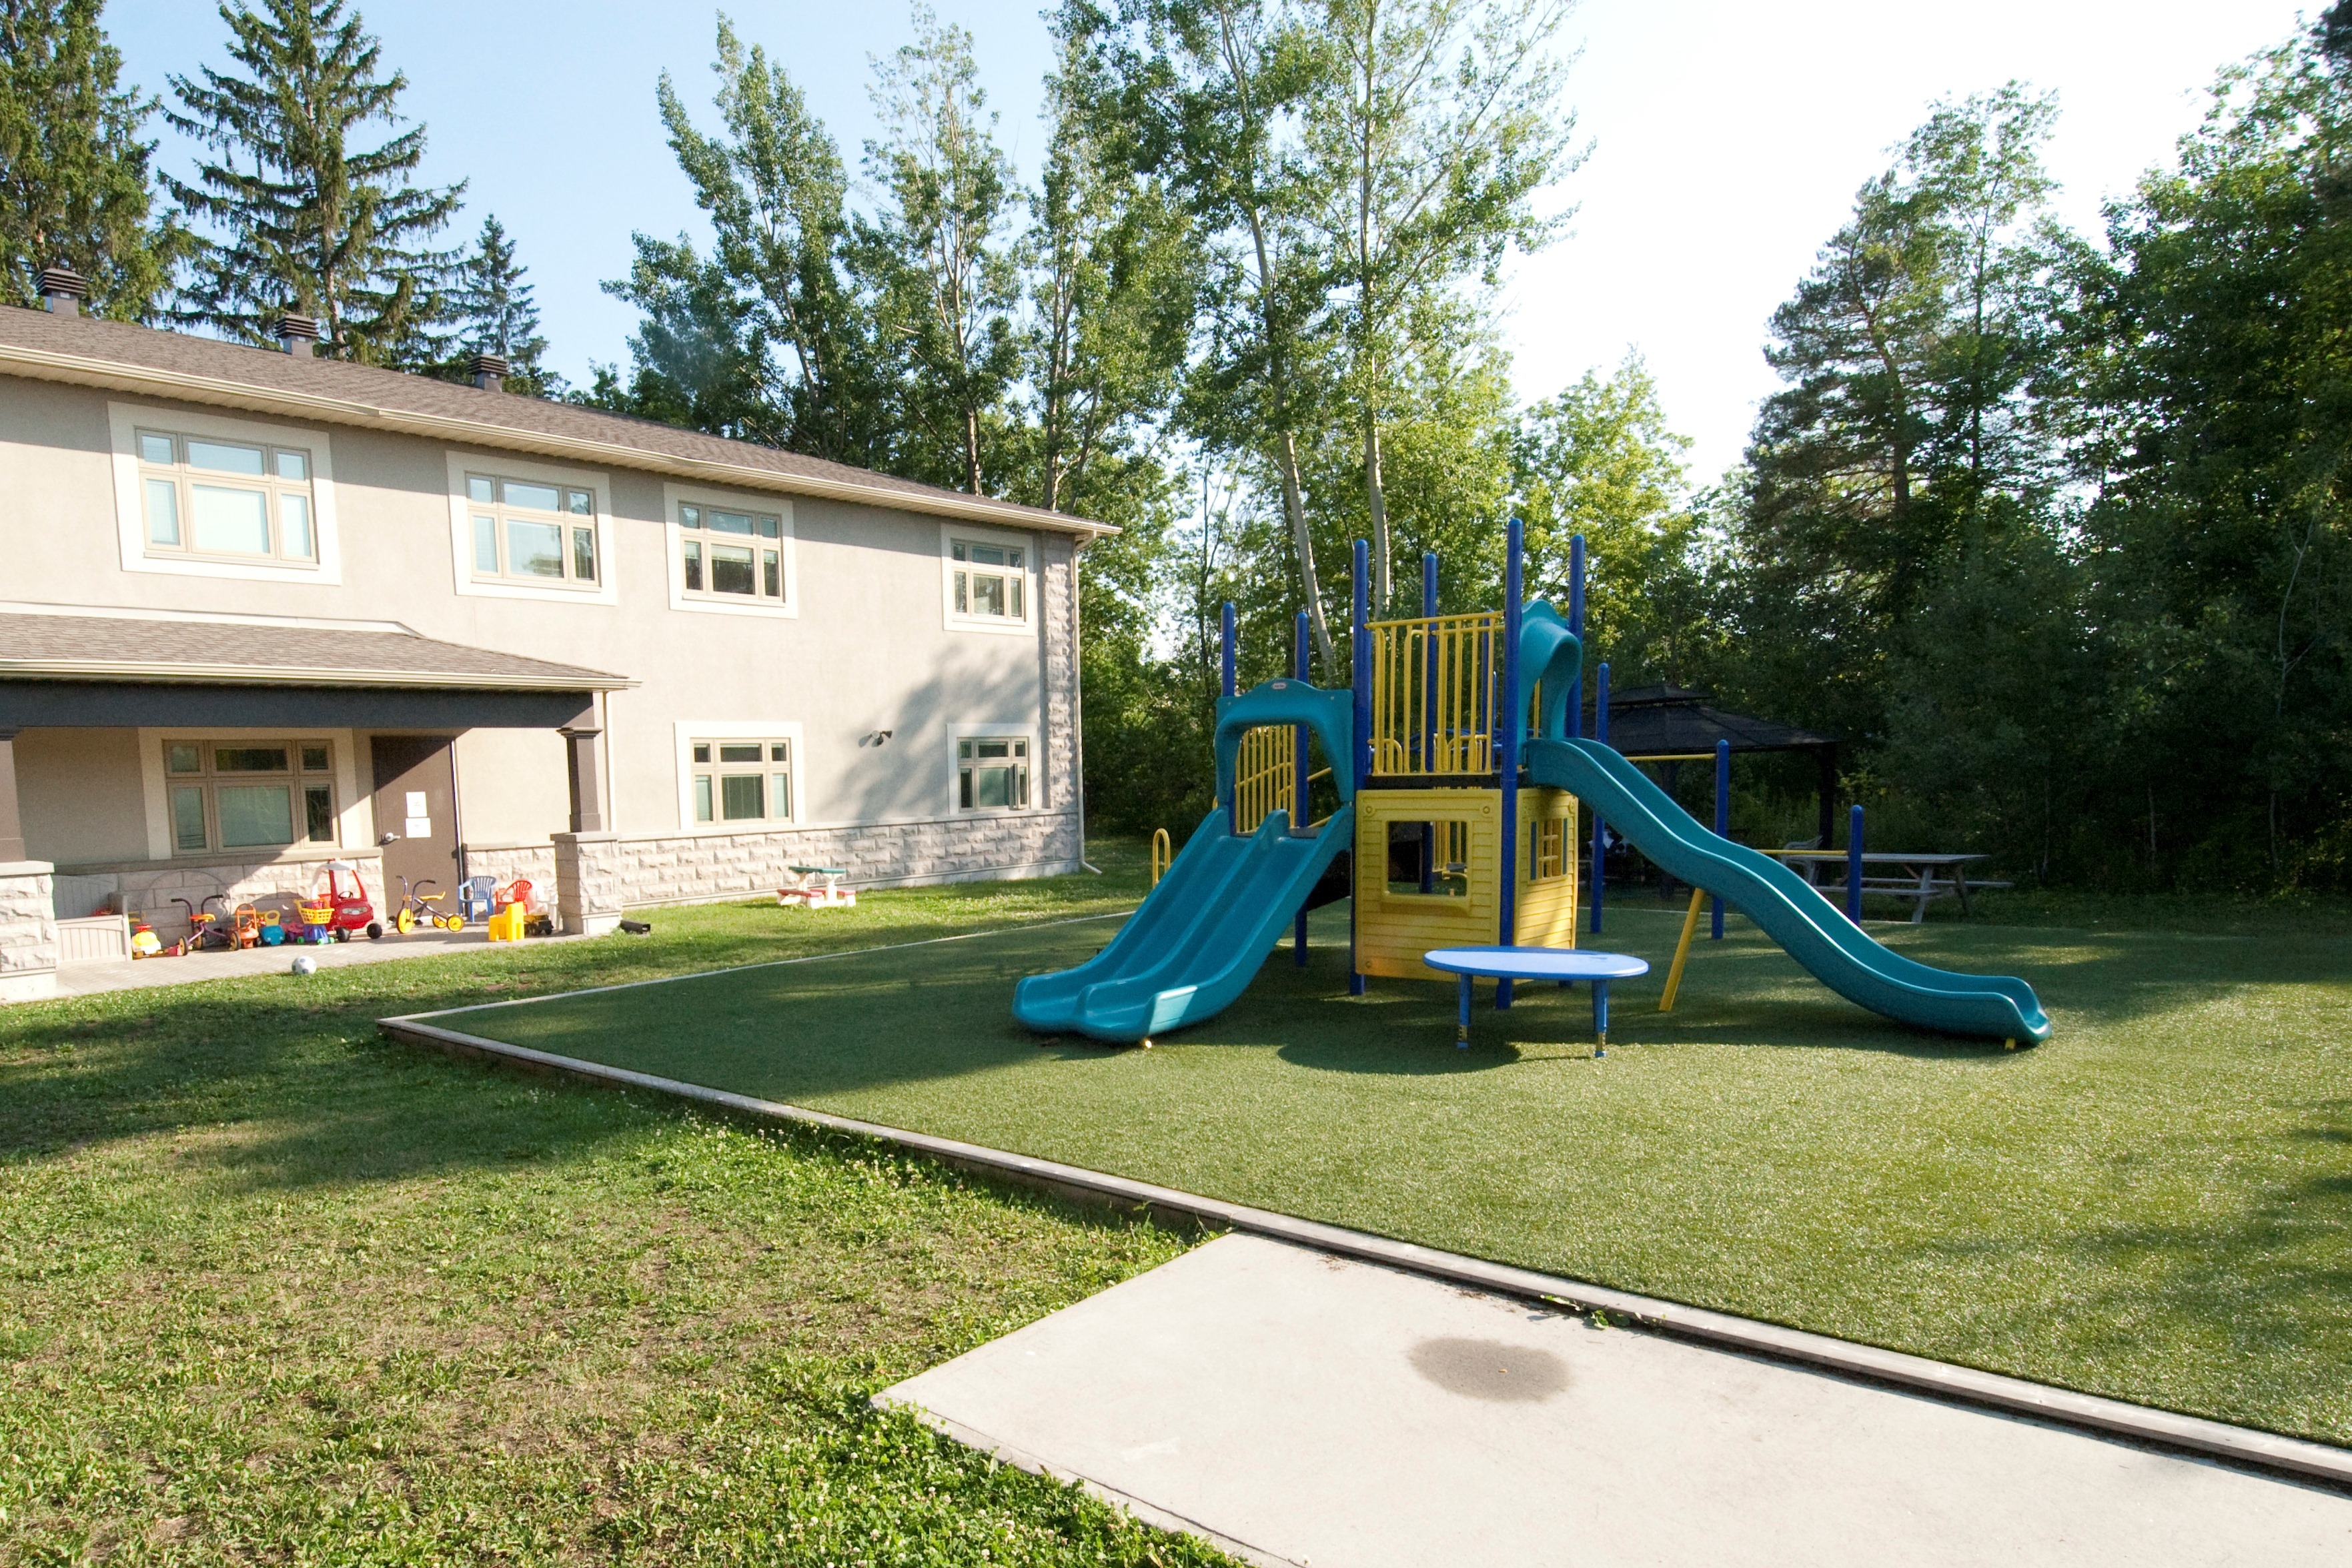 Interval House of Ottawa playground